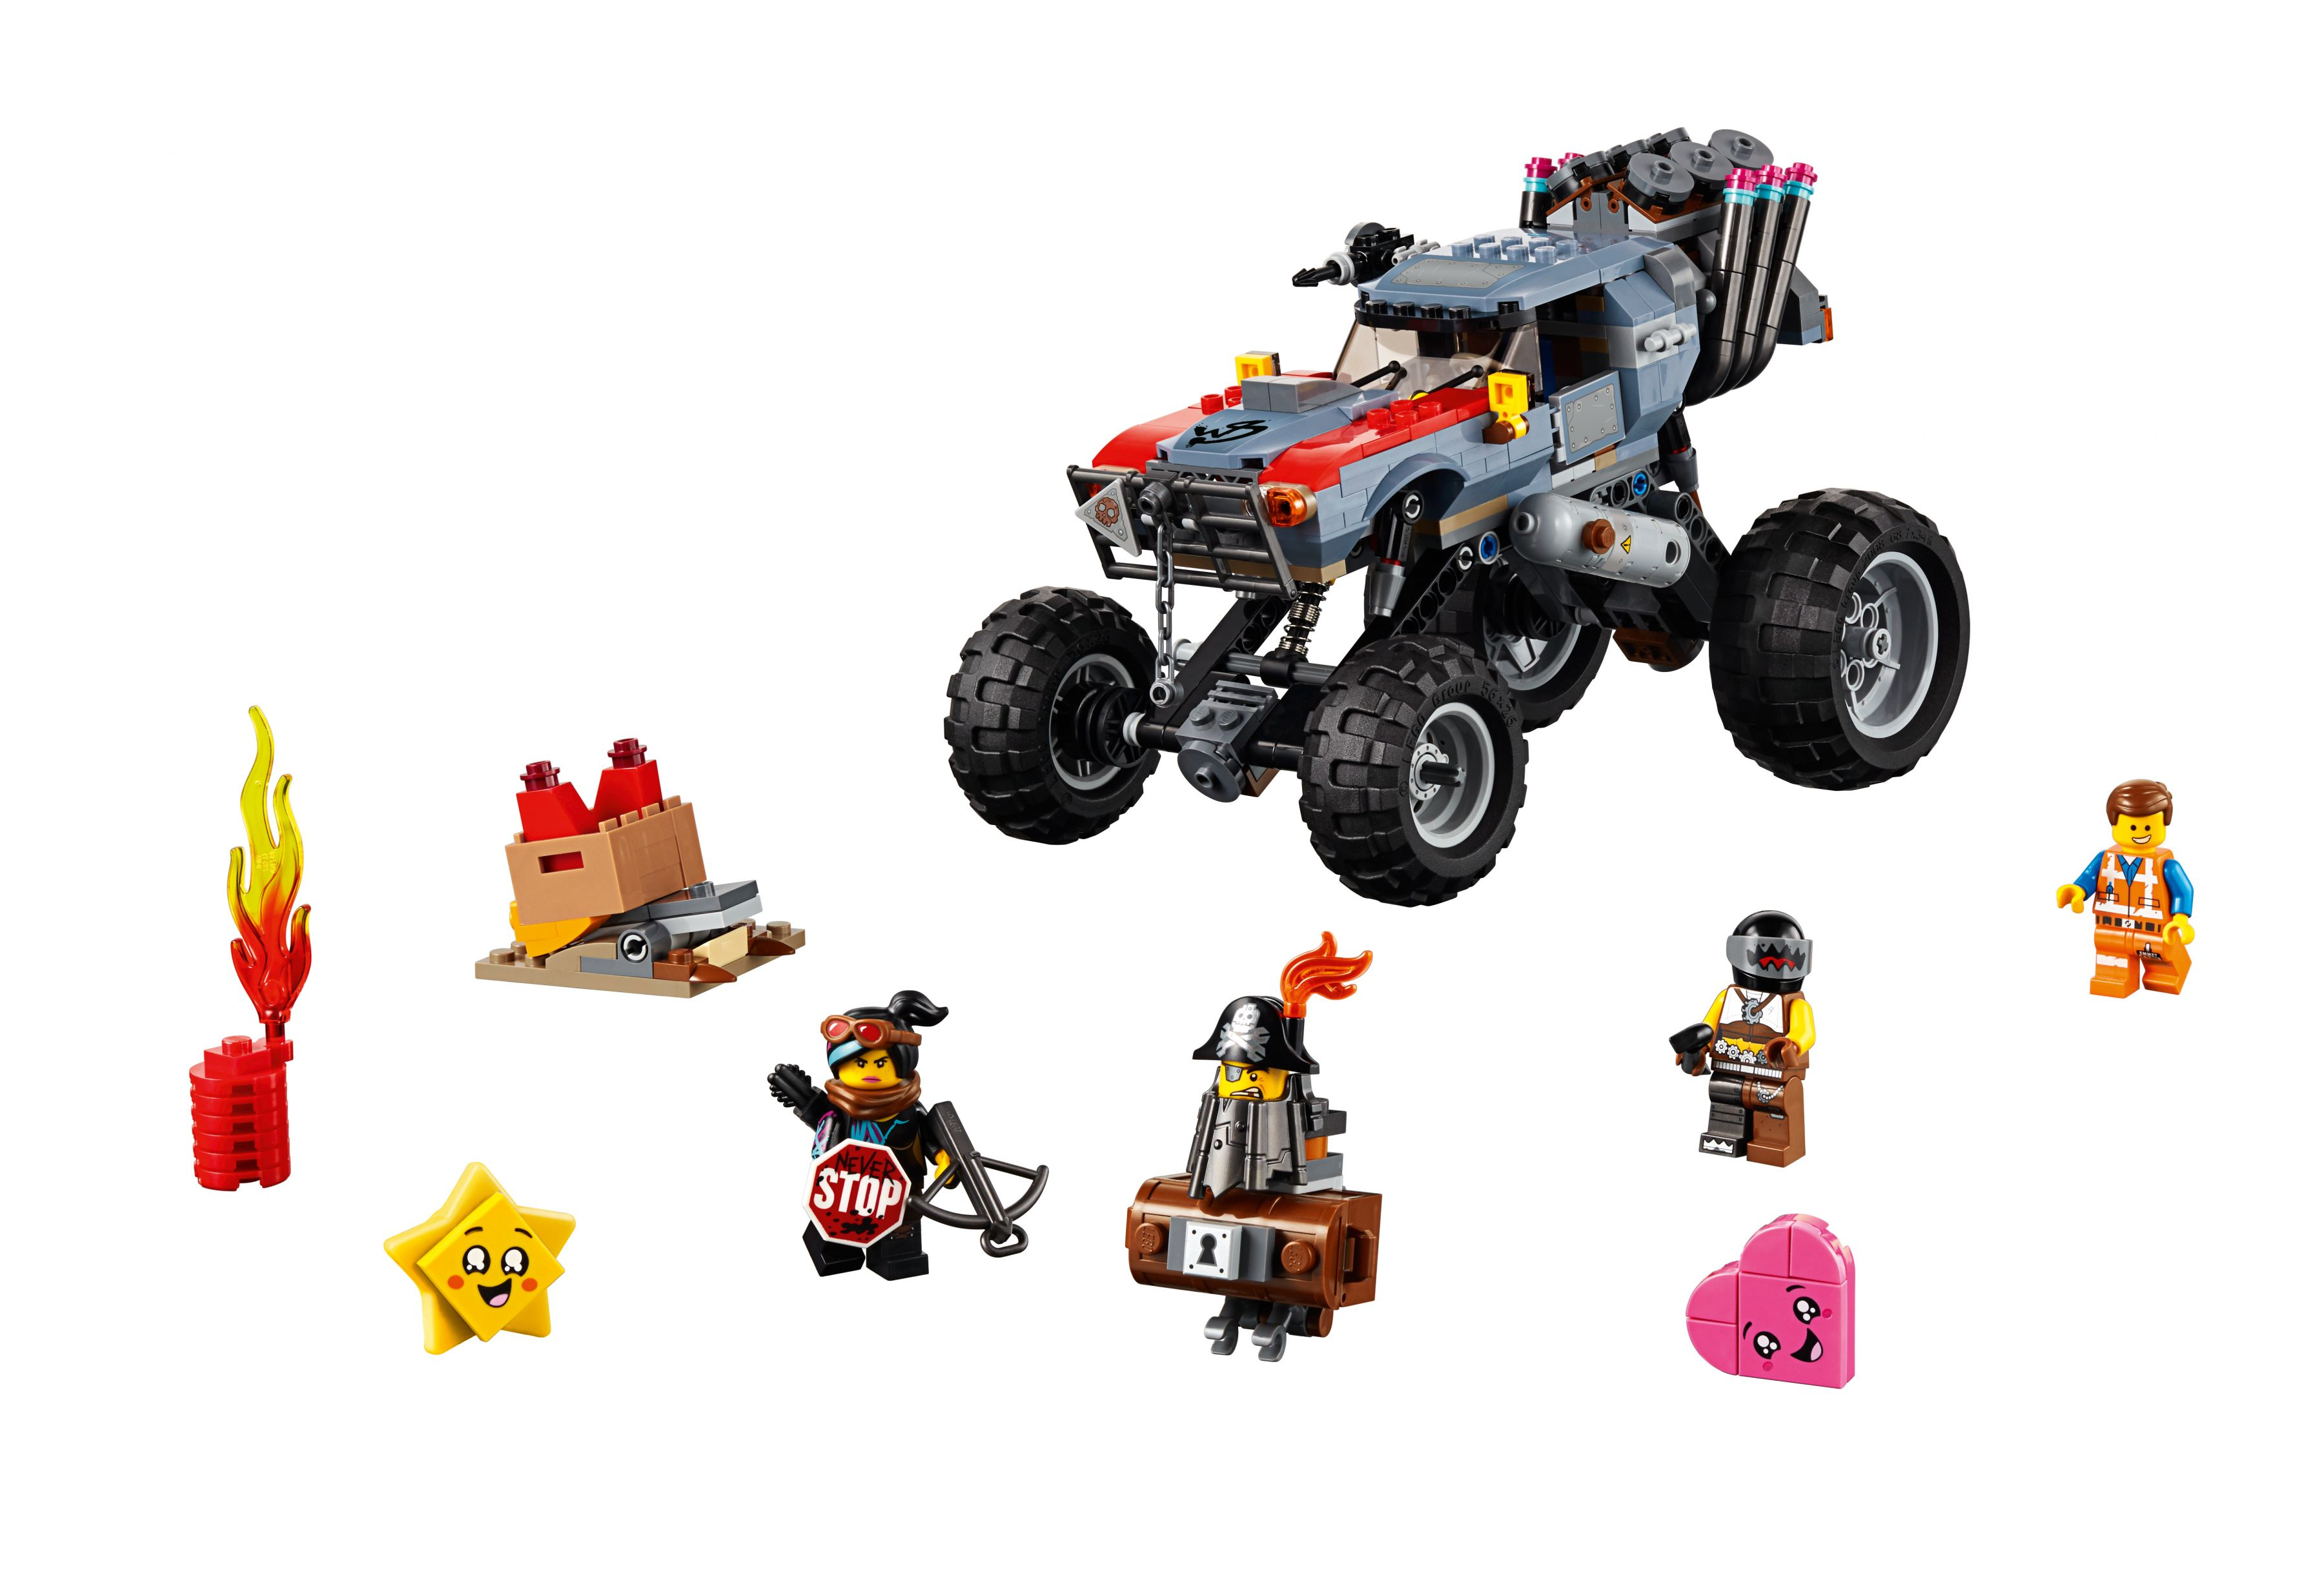 LEGO The LEGO Movie 2 70829 Emmets und Lucys Flucht-Buggy!